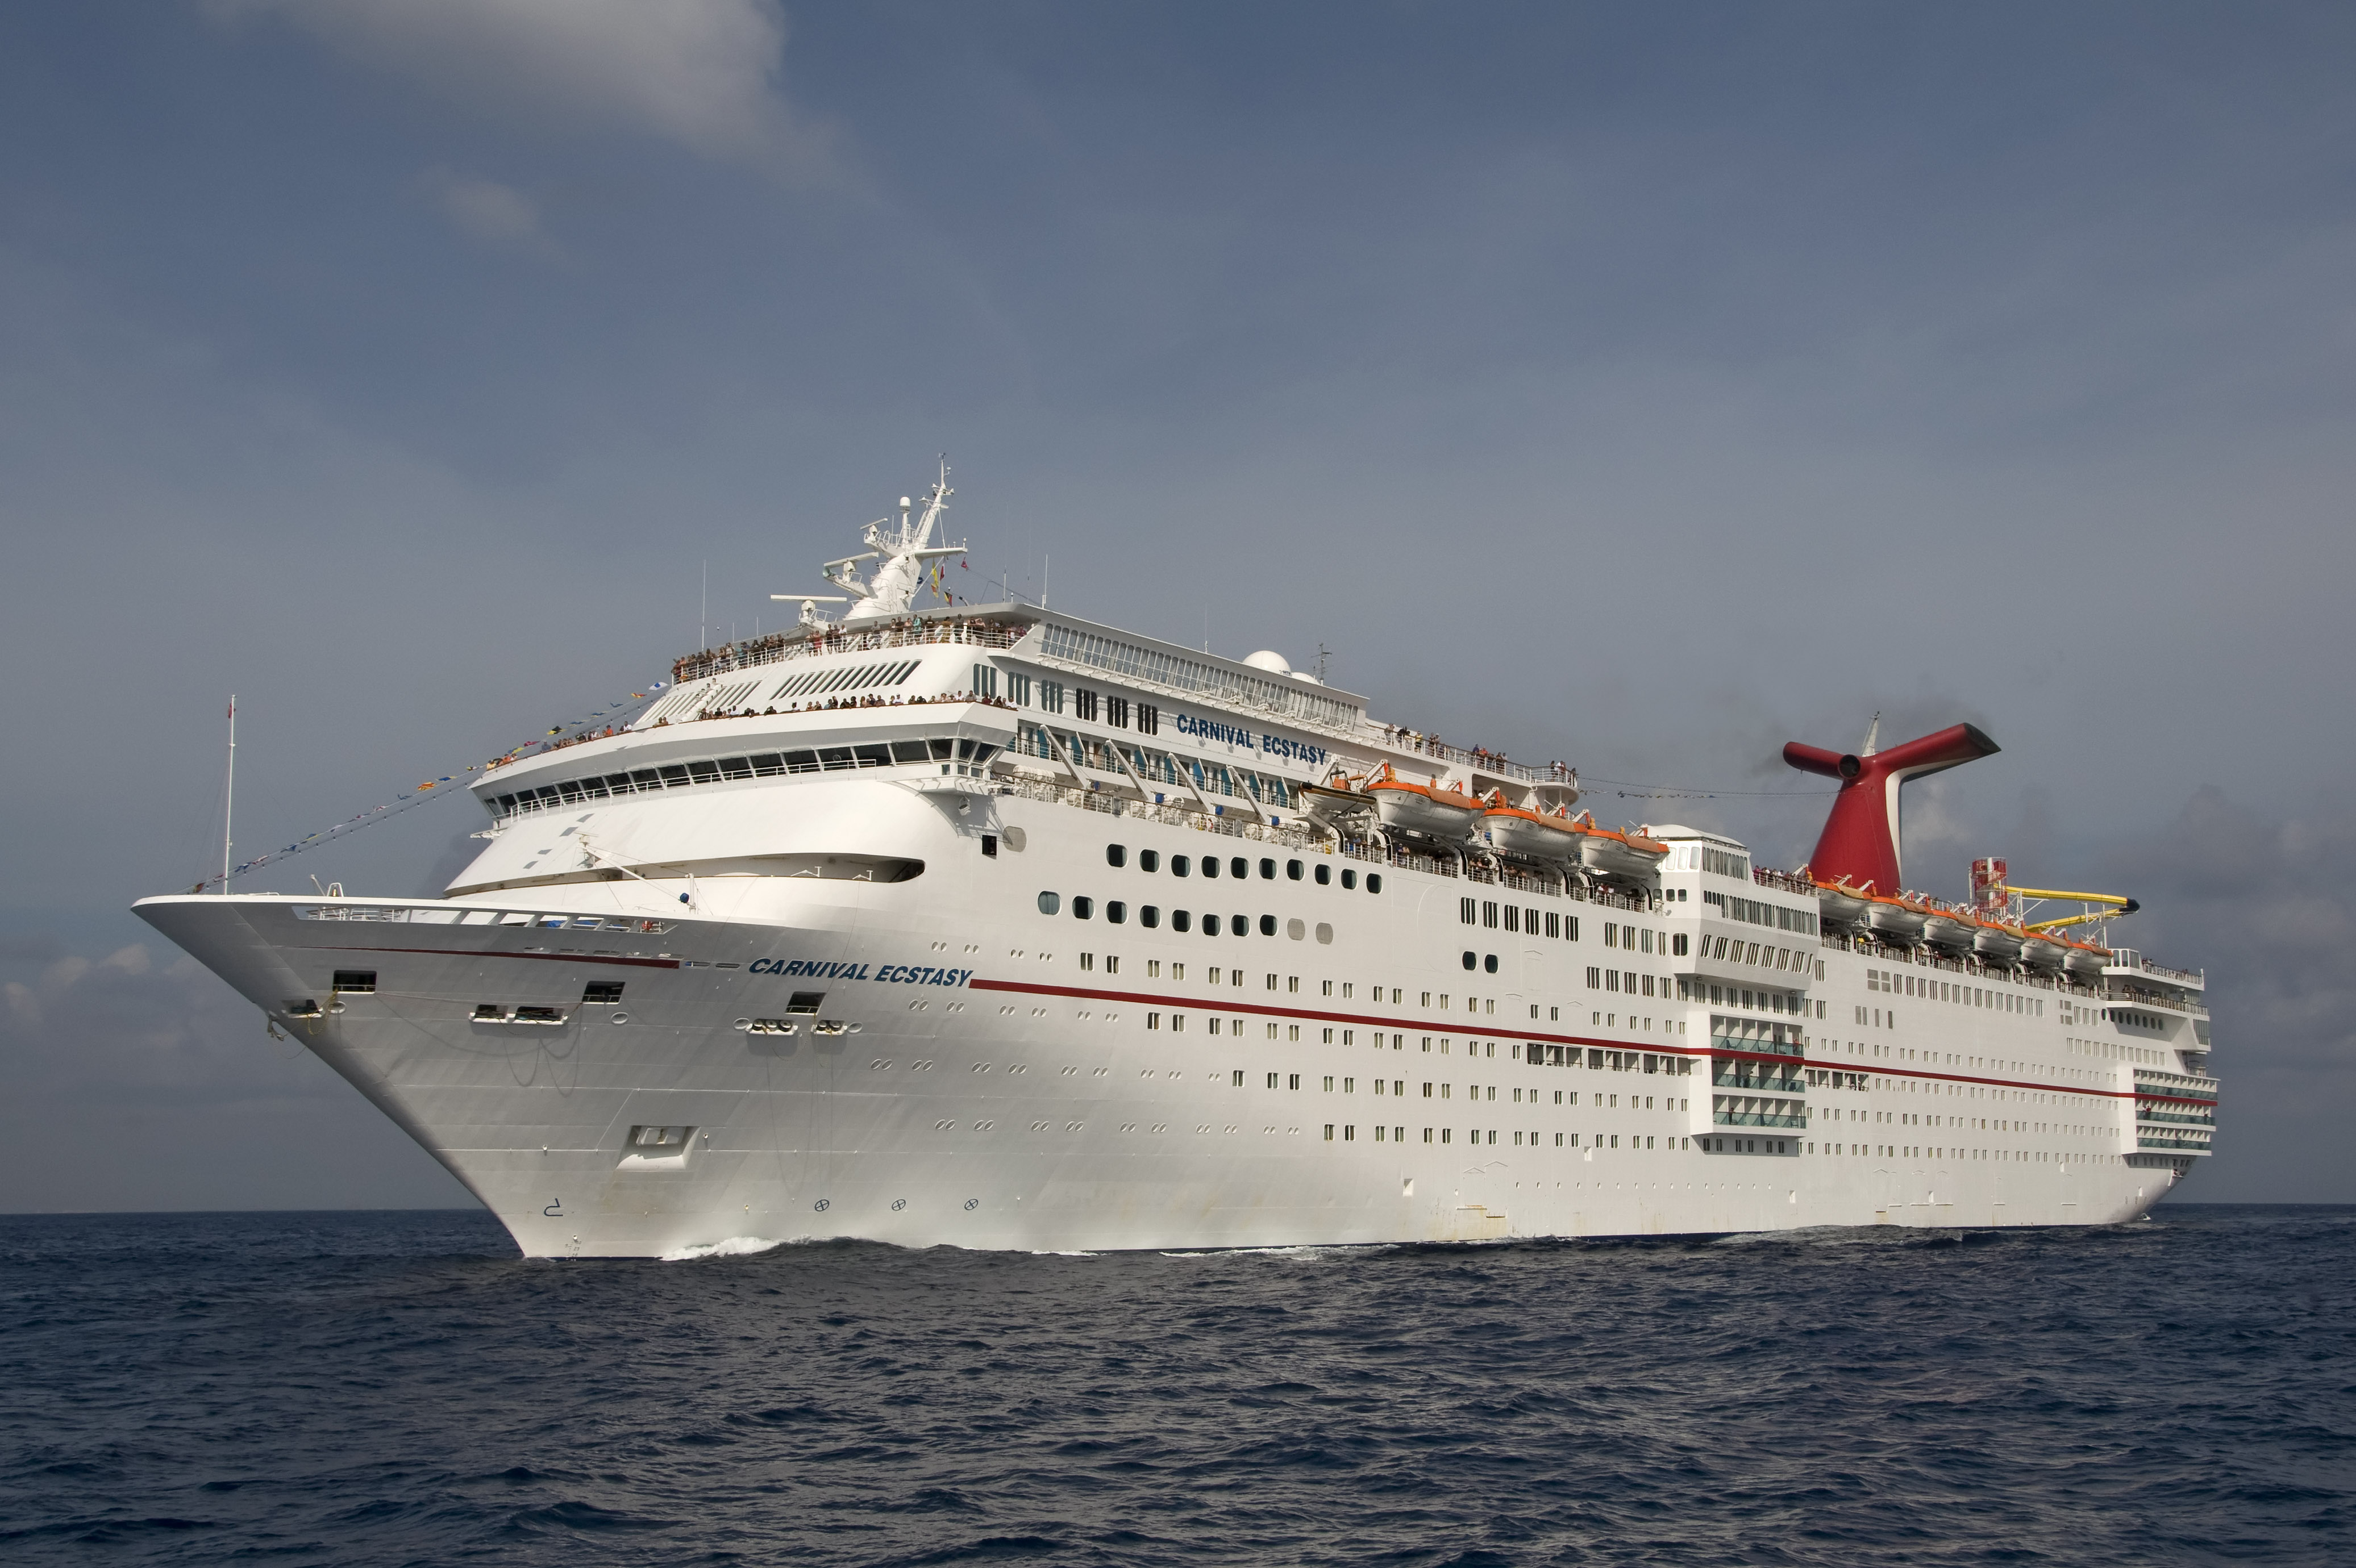 carnival cruise lines today Browse, search and watch cruise ship disaster videos and more at abcnewscom.